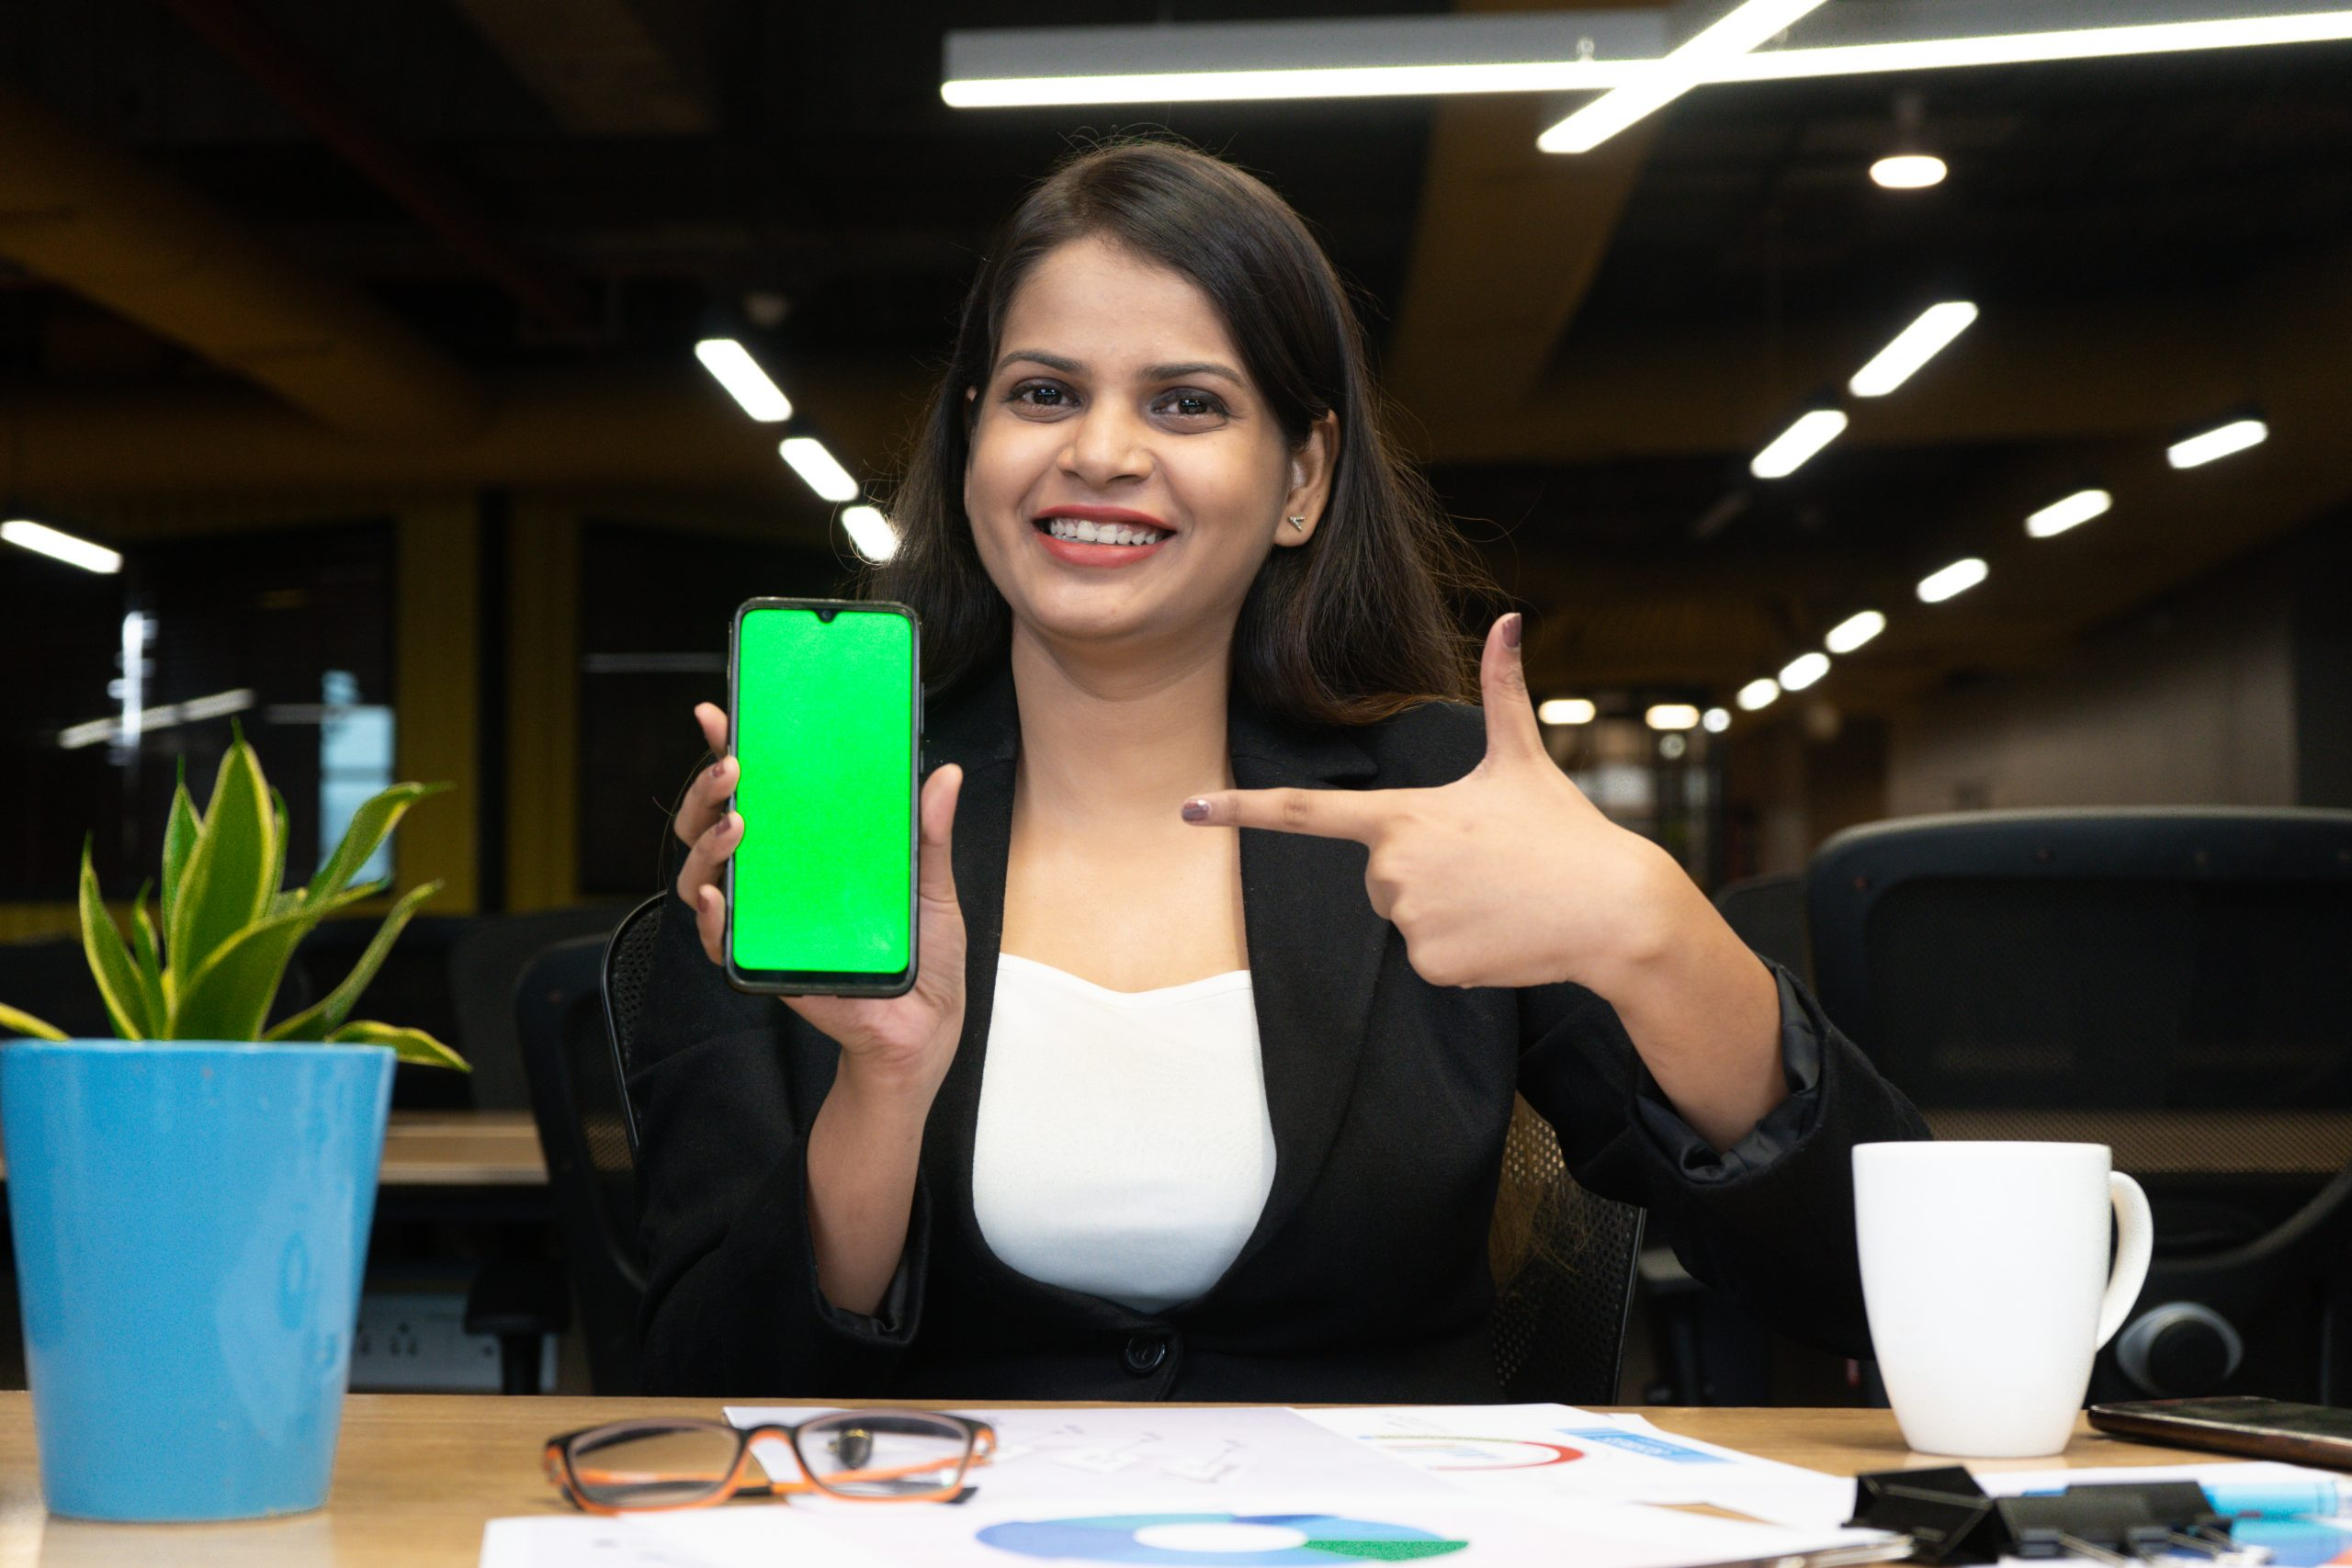 Happy CEO pointing towards with green screen mobile